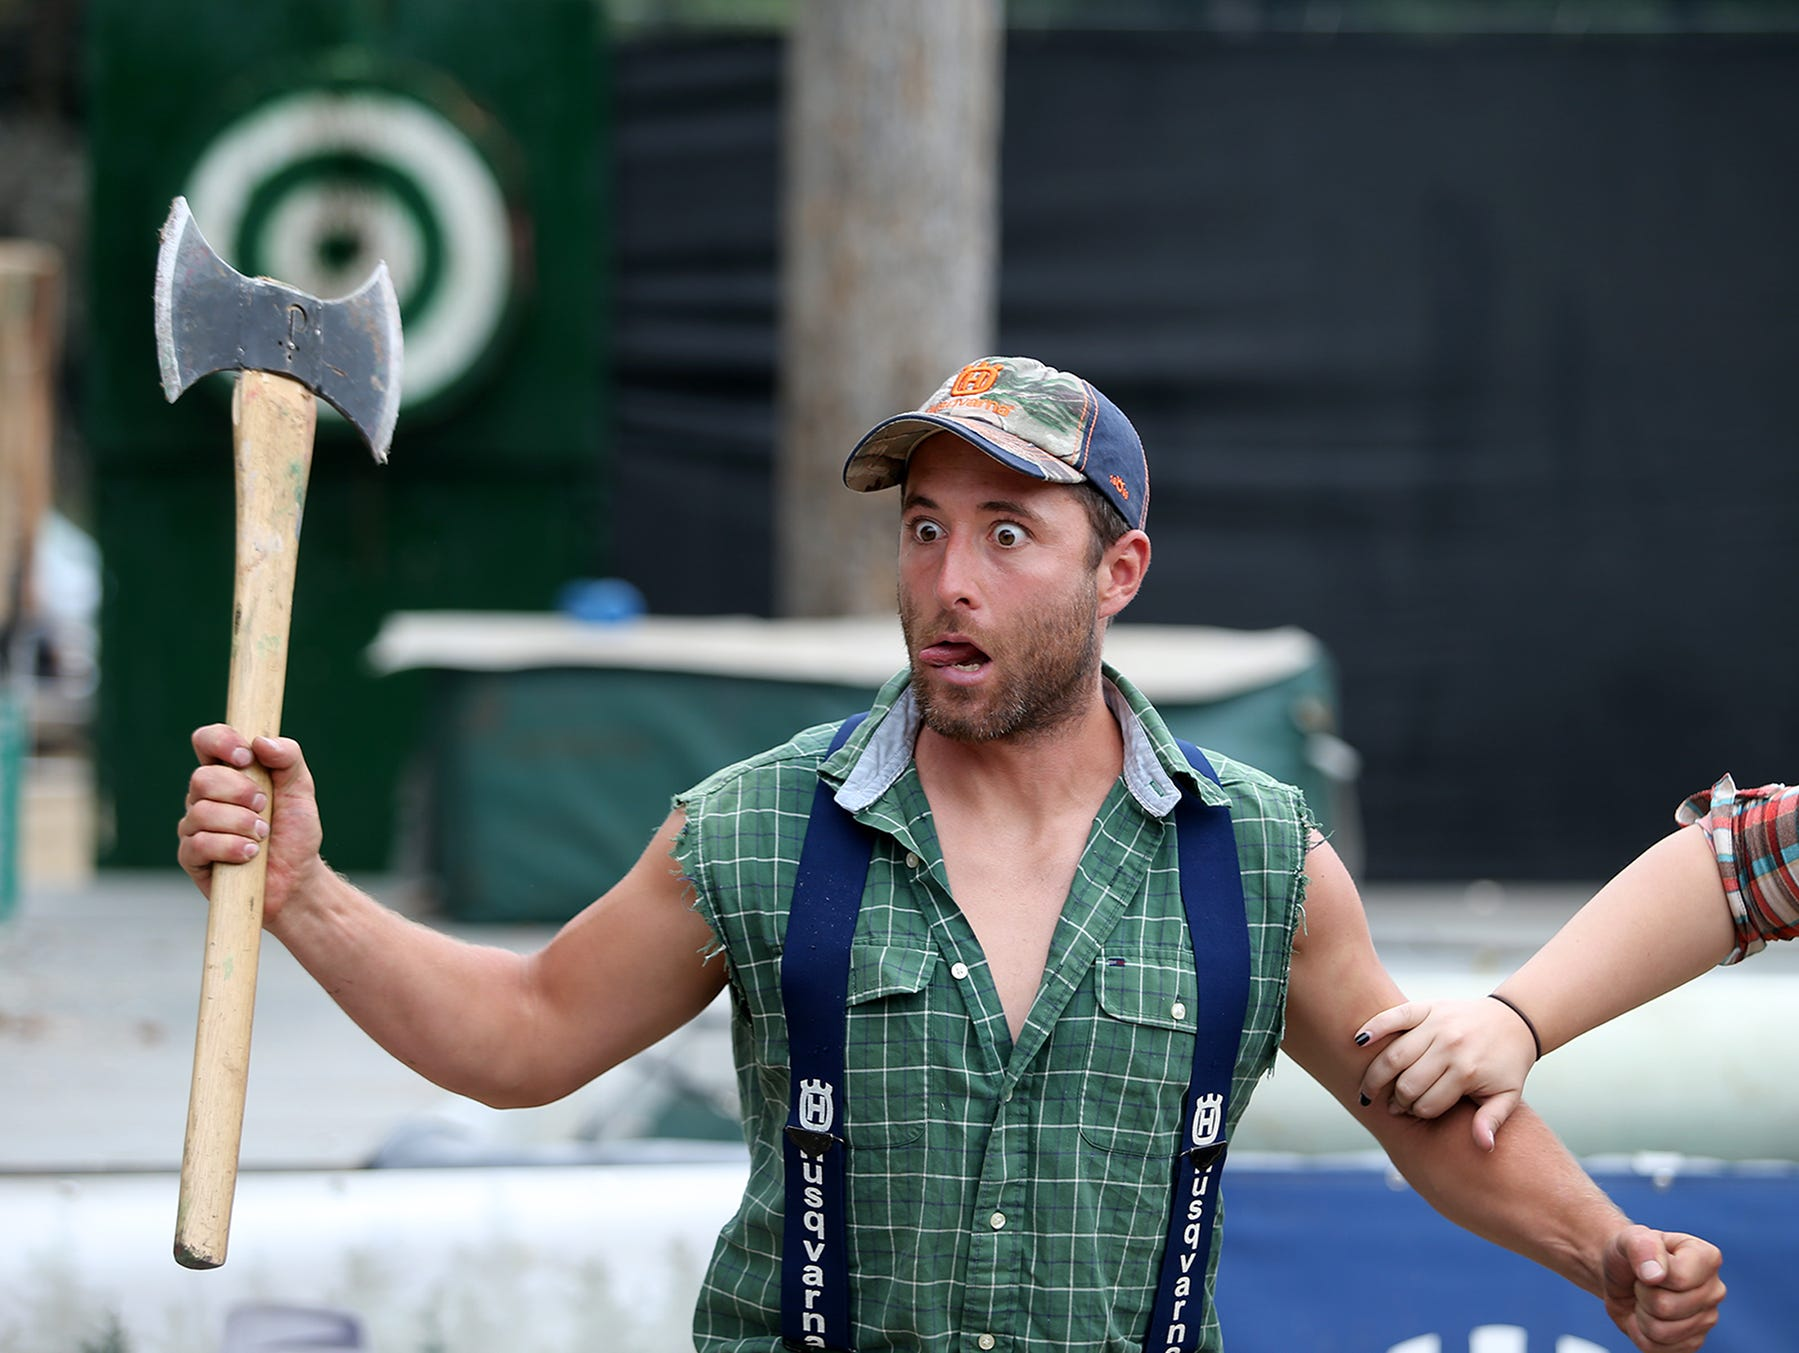 Scott Thompson performs in the West Coast Lumberjack Show at the Kitsap County Fair & Stampede on Friday, August 24, 2018 at the Kitsap County Fairgrounds.